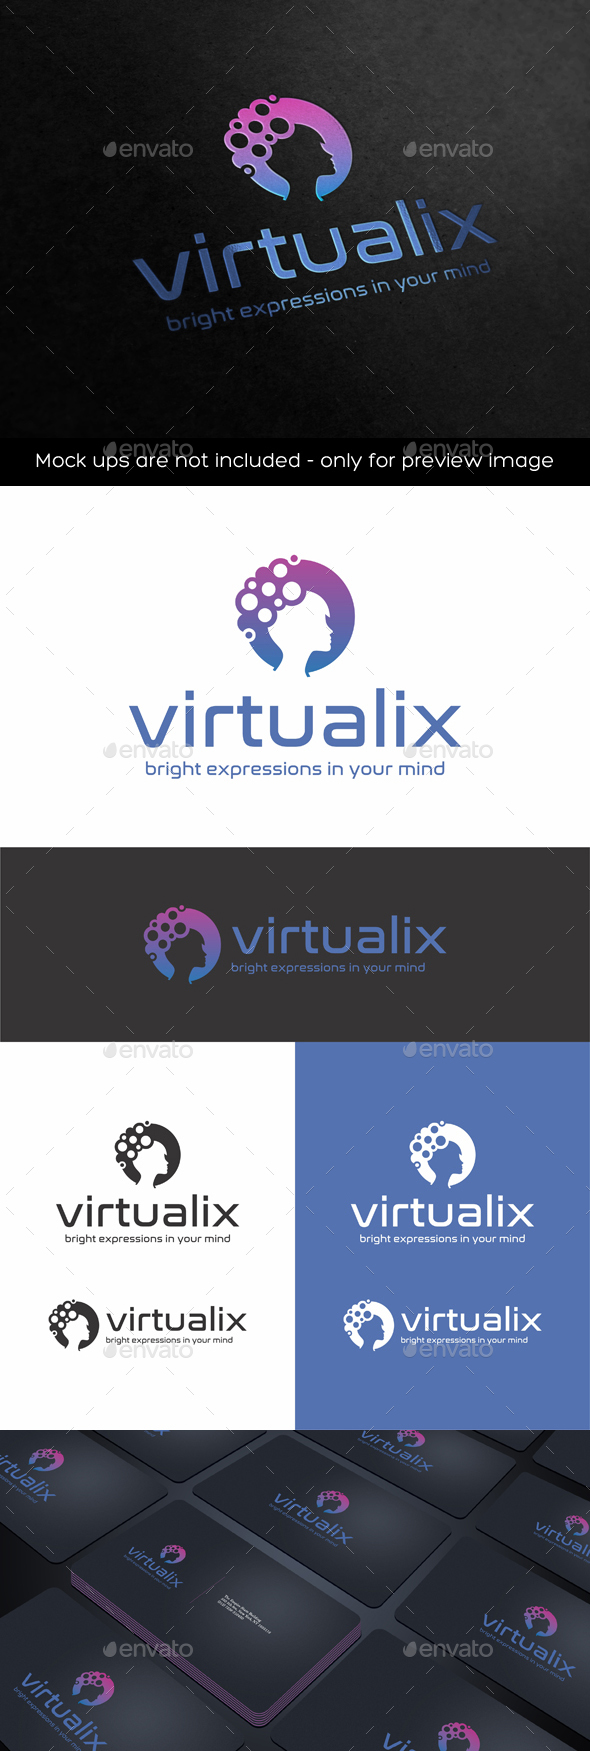 Virtualix Logo - Humans Logo Templates